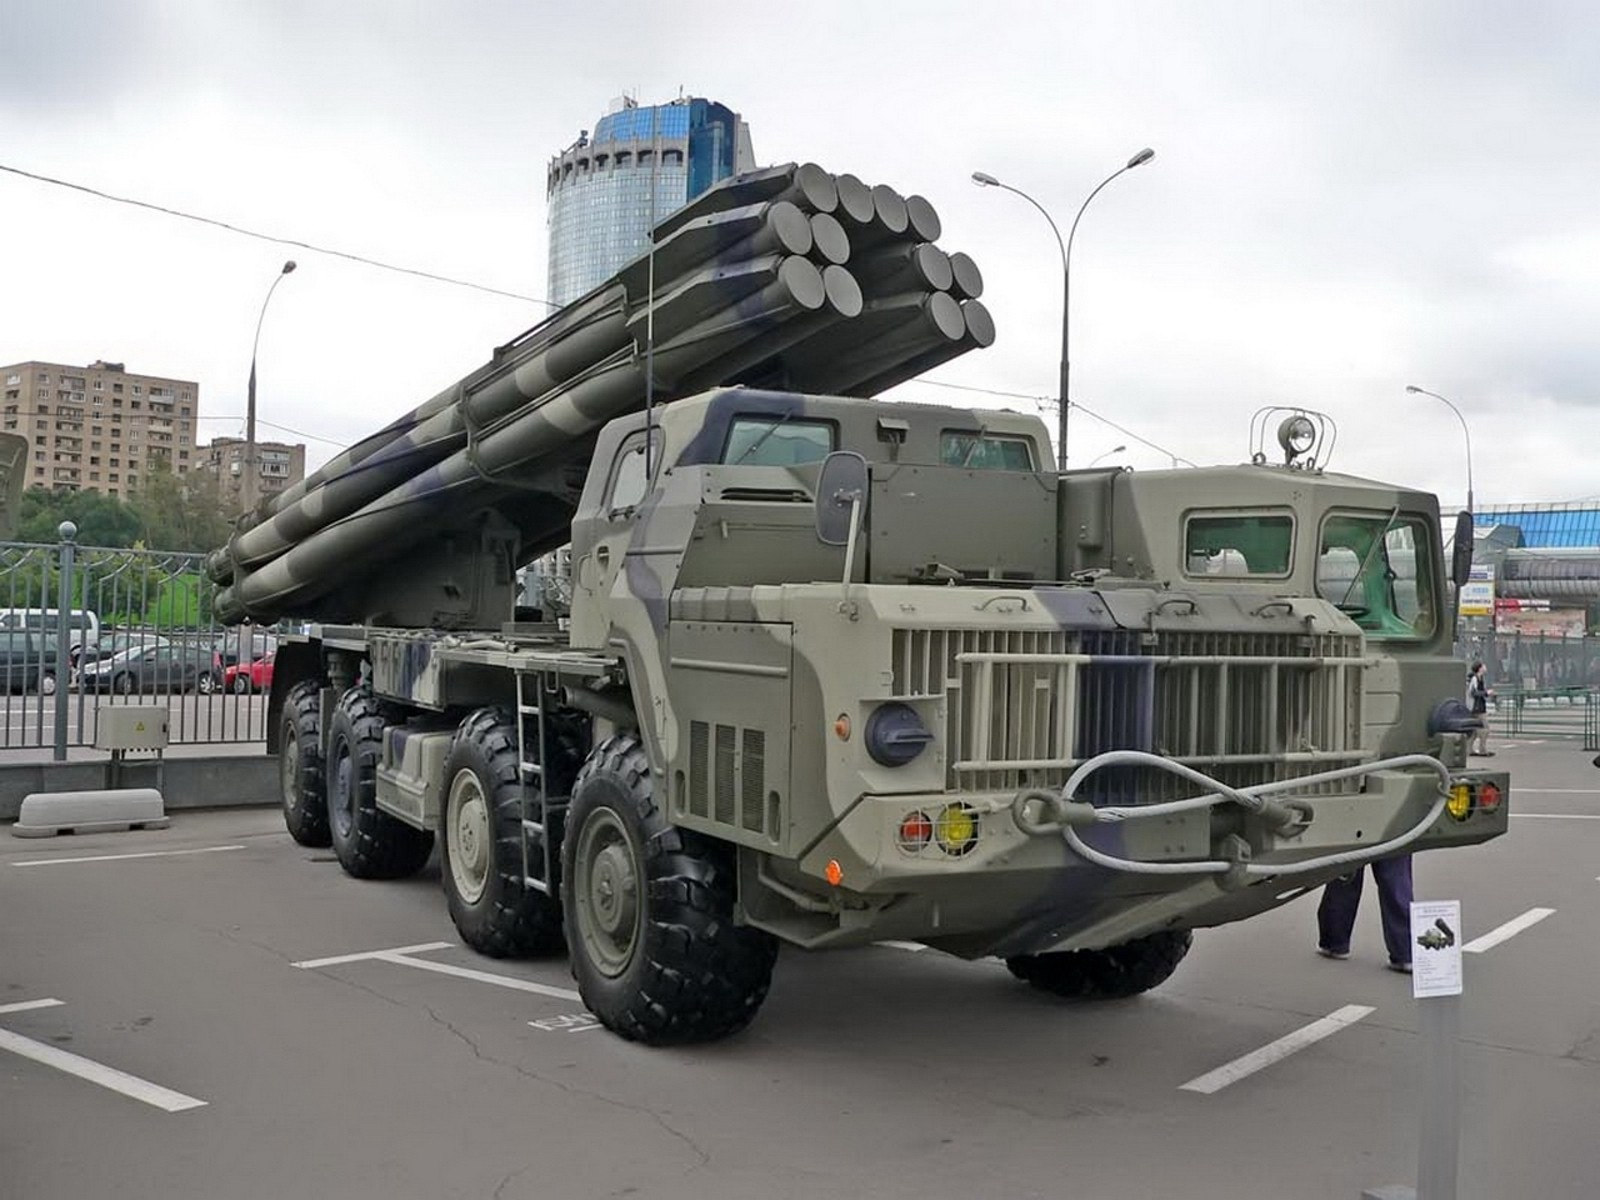 BM-30 Smerch - Walk Around